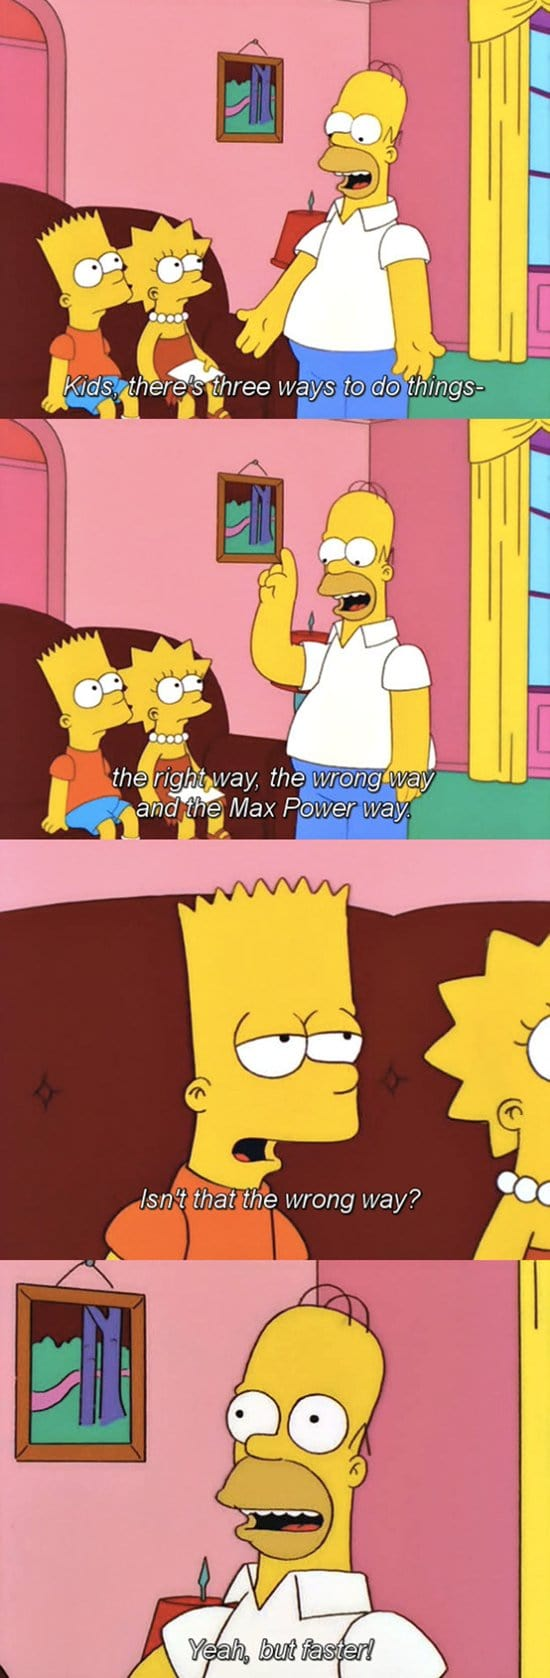 simpsons-quotes-max-power